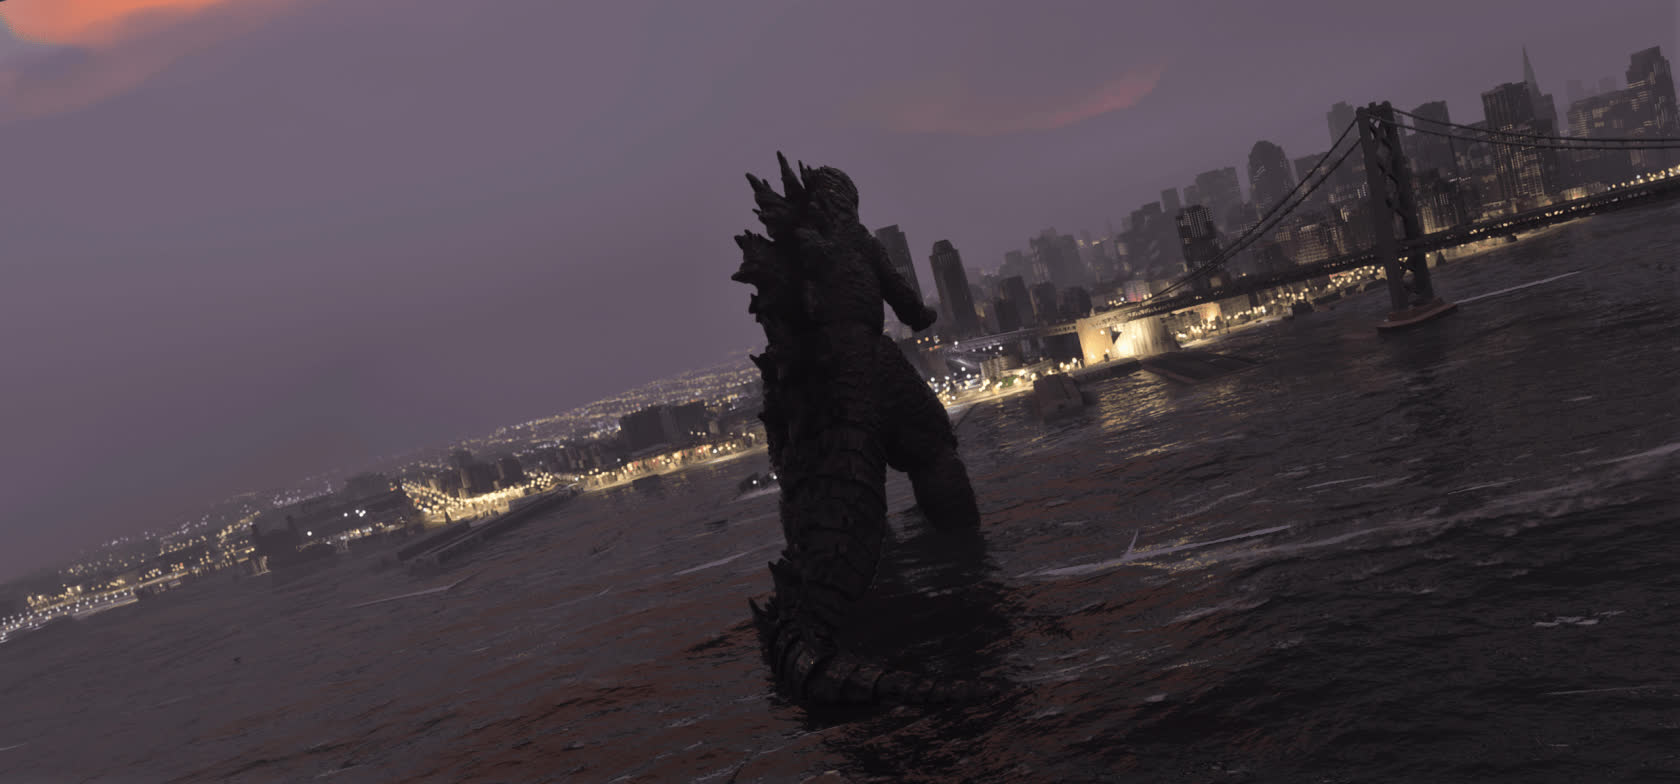 Godzilla has arrived in Flight Simulator 2020 courtesy of a player-made mod